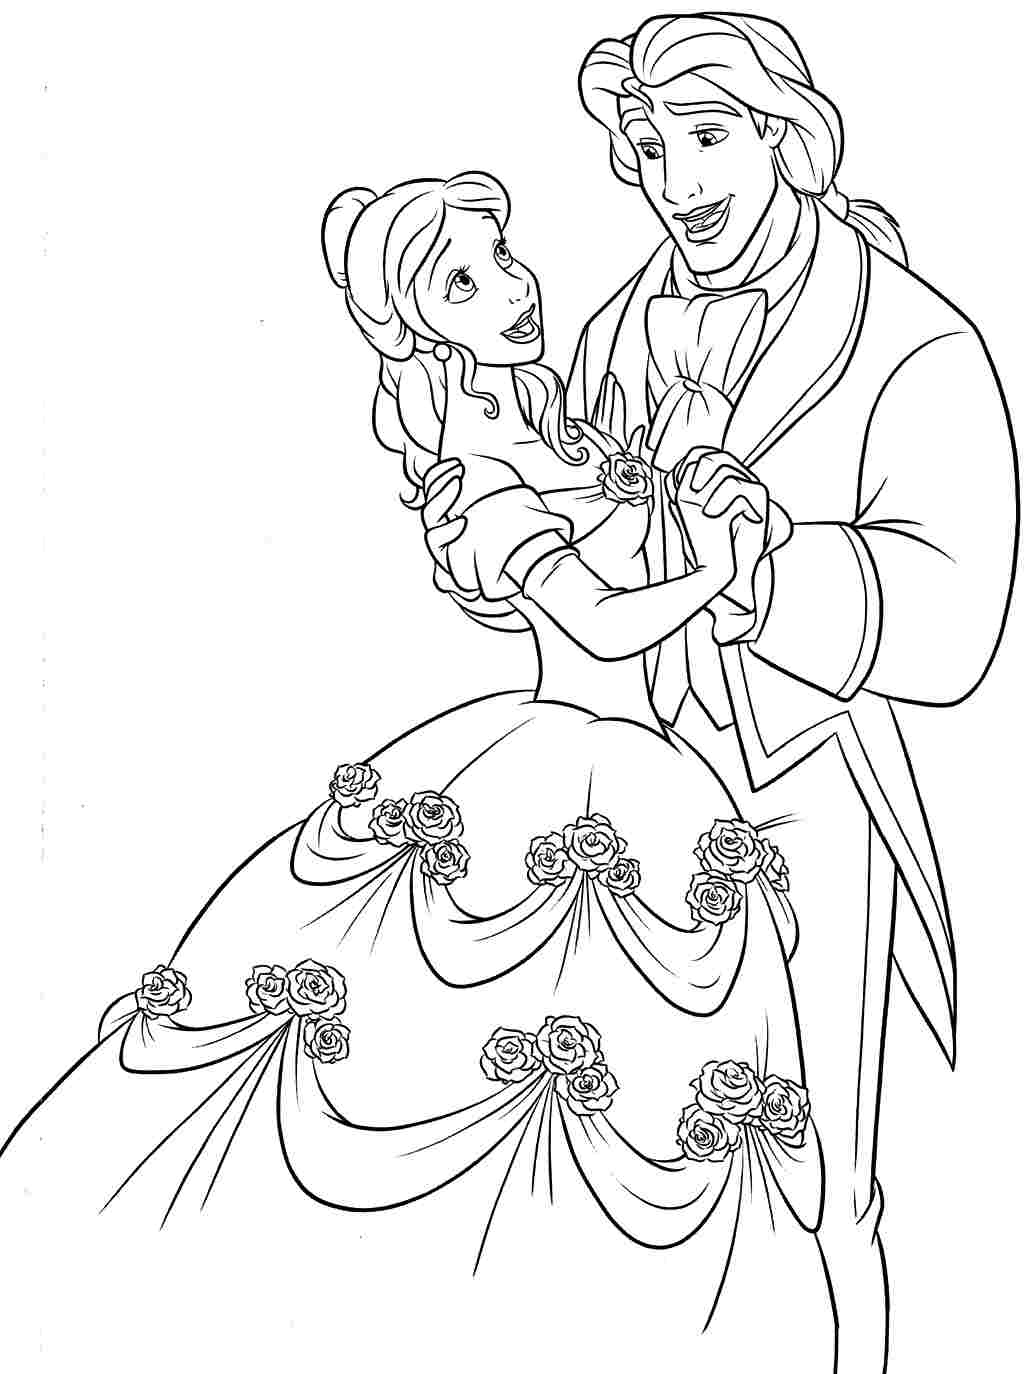 Belle Coloring Pages To Print At Getdrawings Com Free For Personal